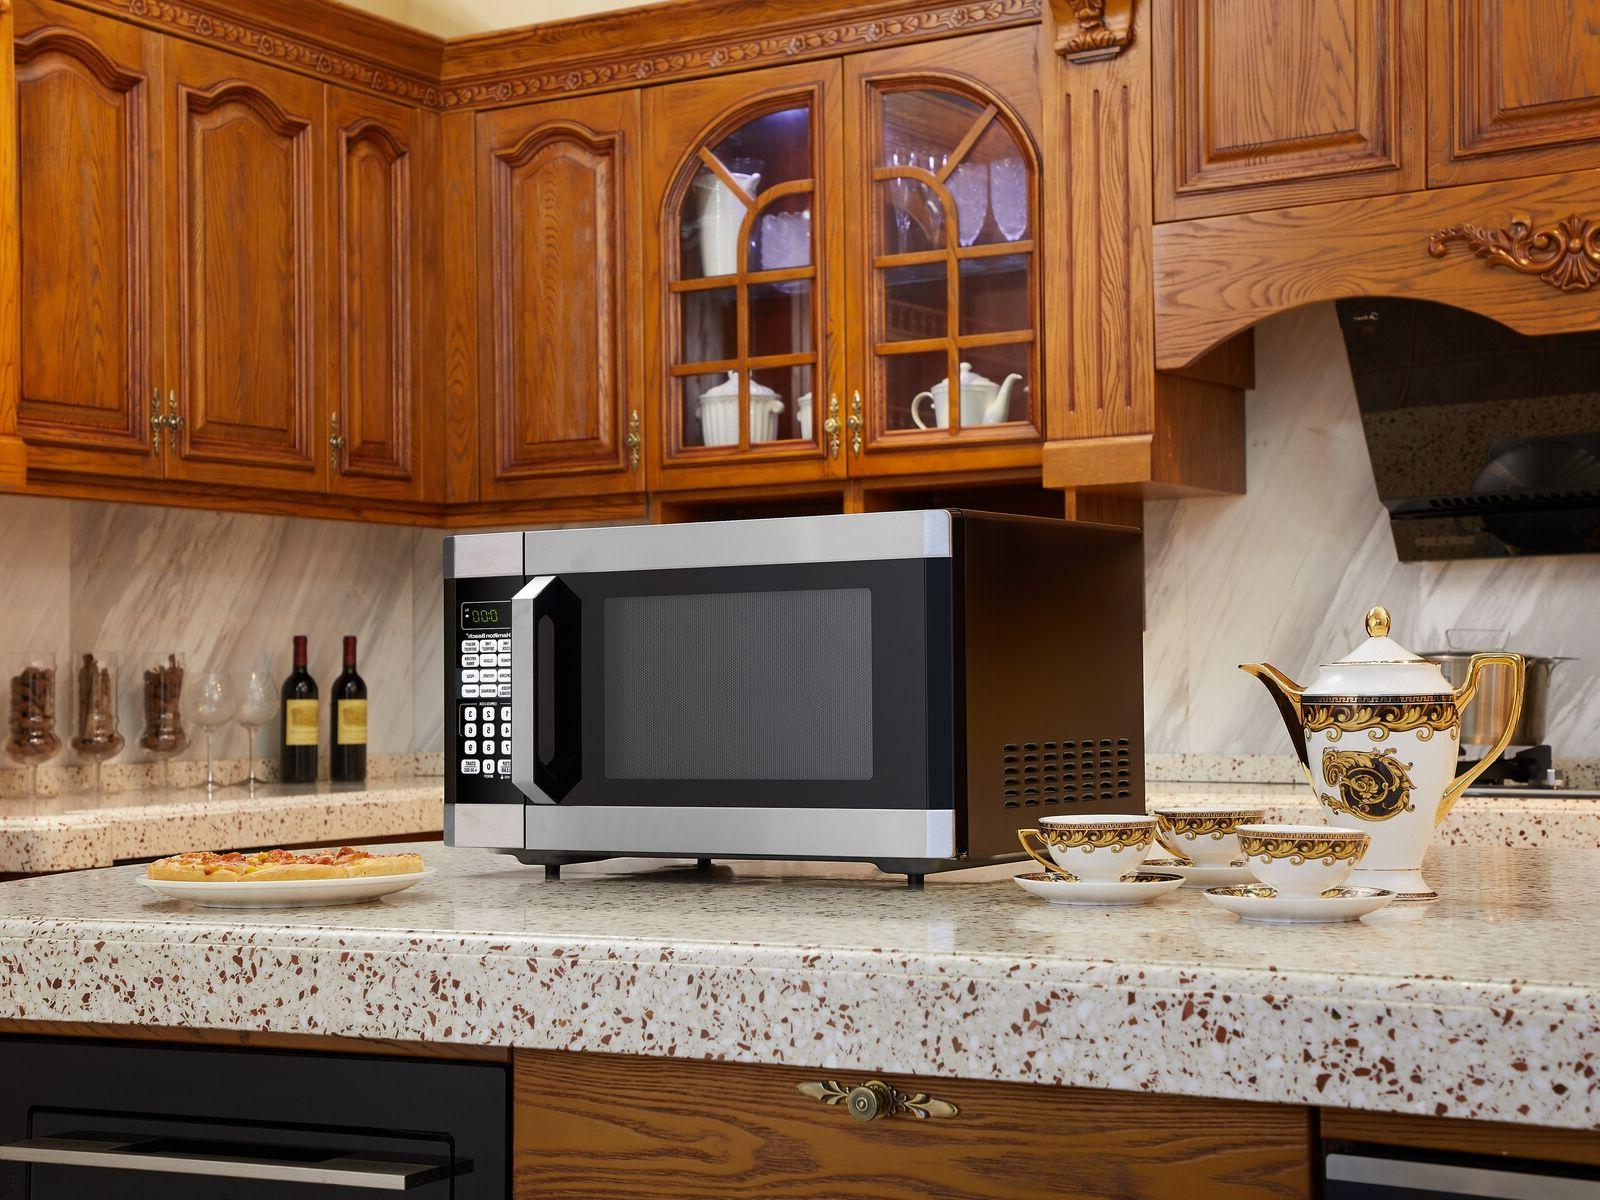 Countertop Microwave Oven 1.6 Cu ft 1100W New